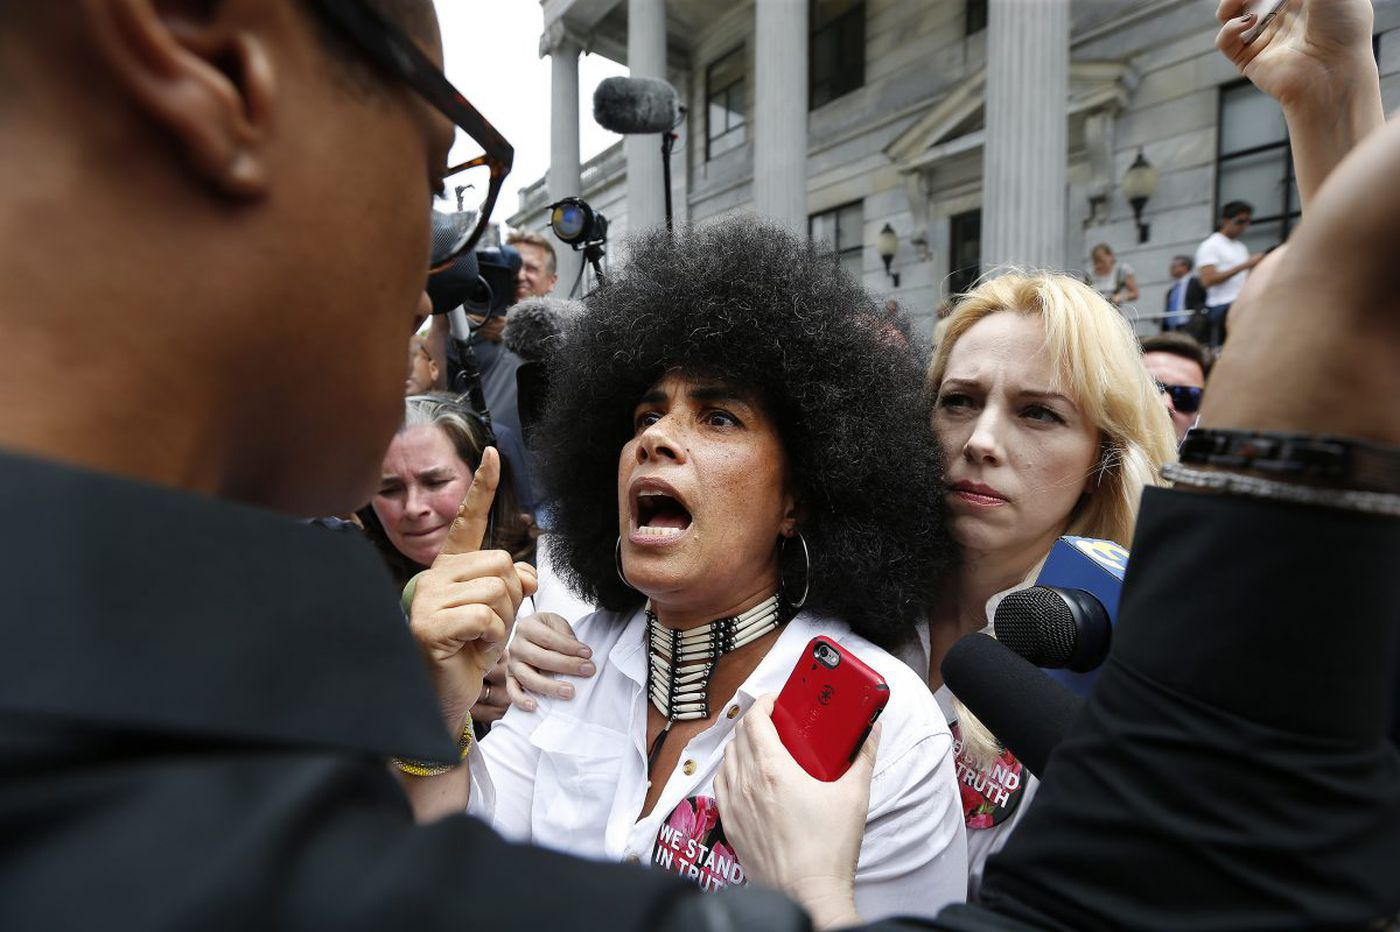 Cosby mistrial?: Reactions from Twitter and Facebook